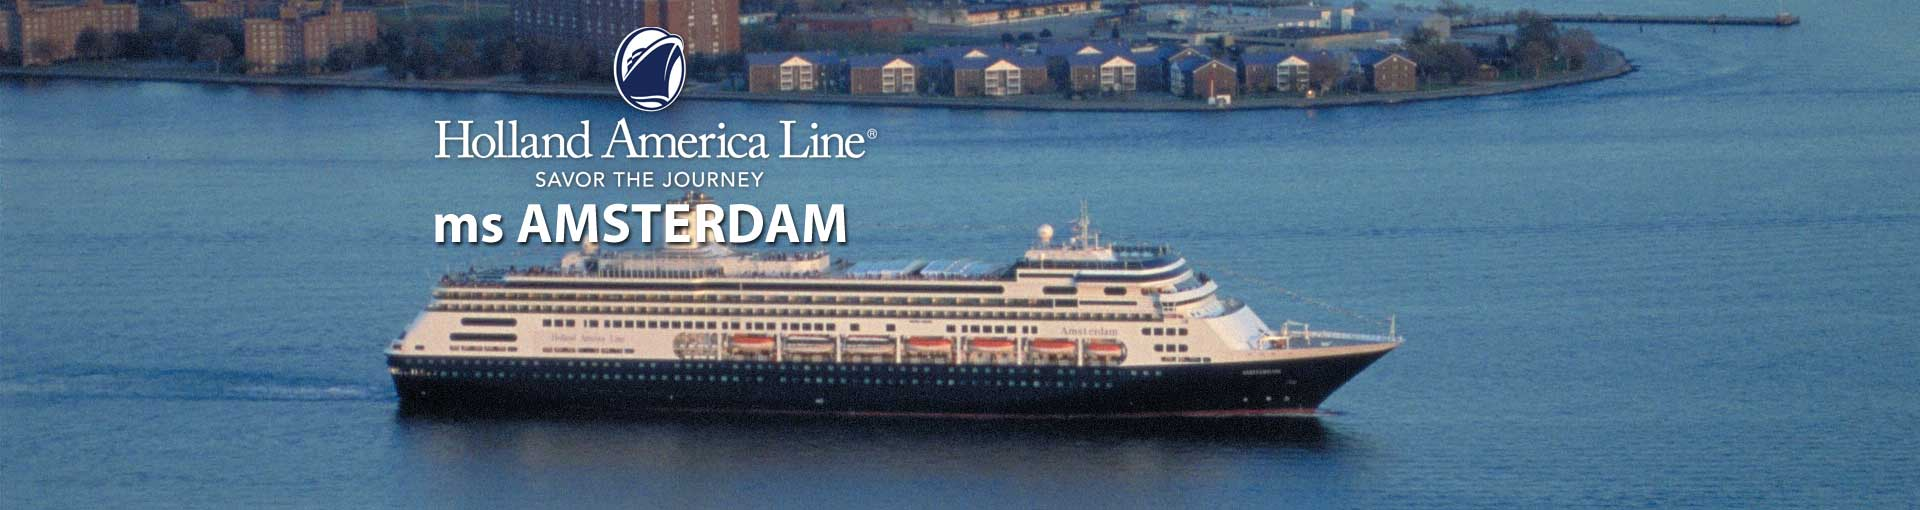 Holland America ms Amsterdam cruise ship